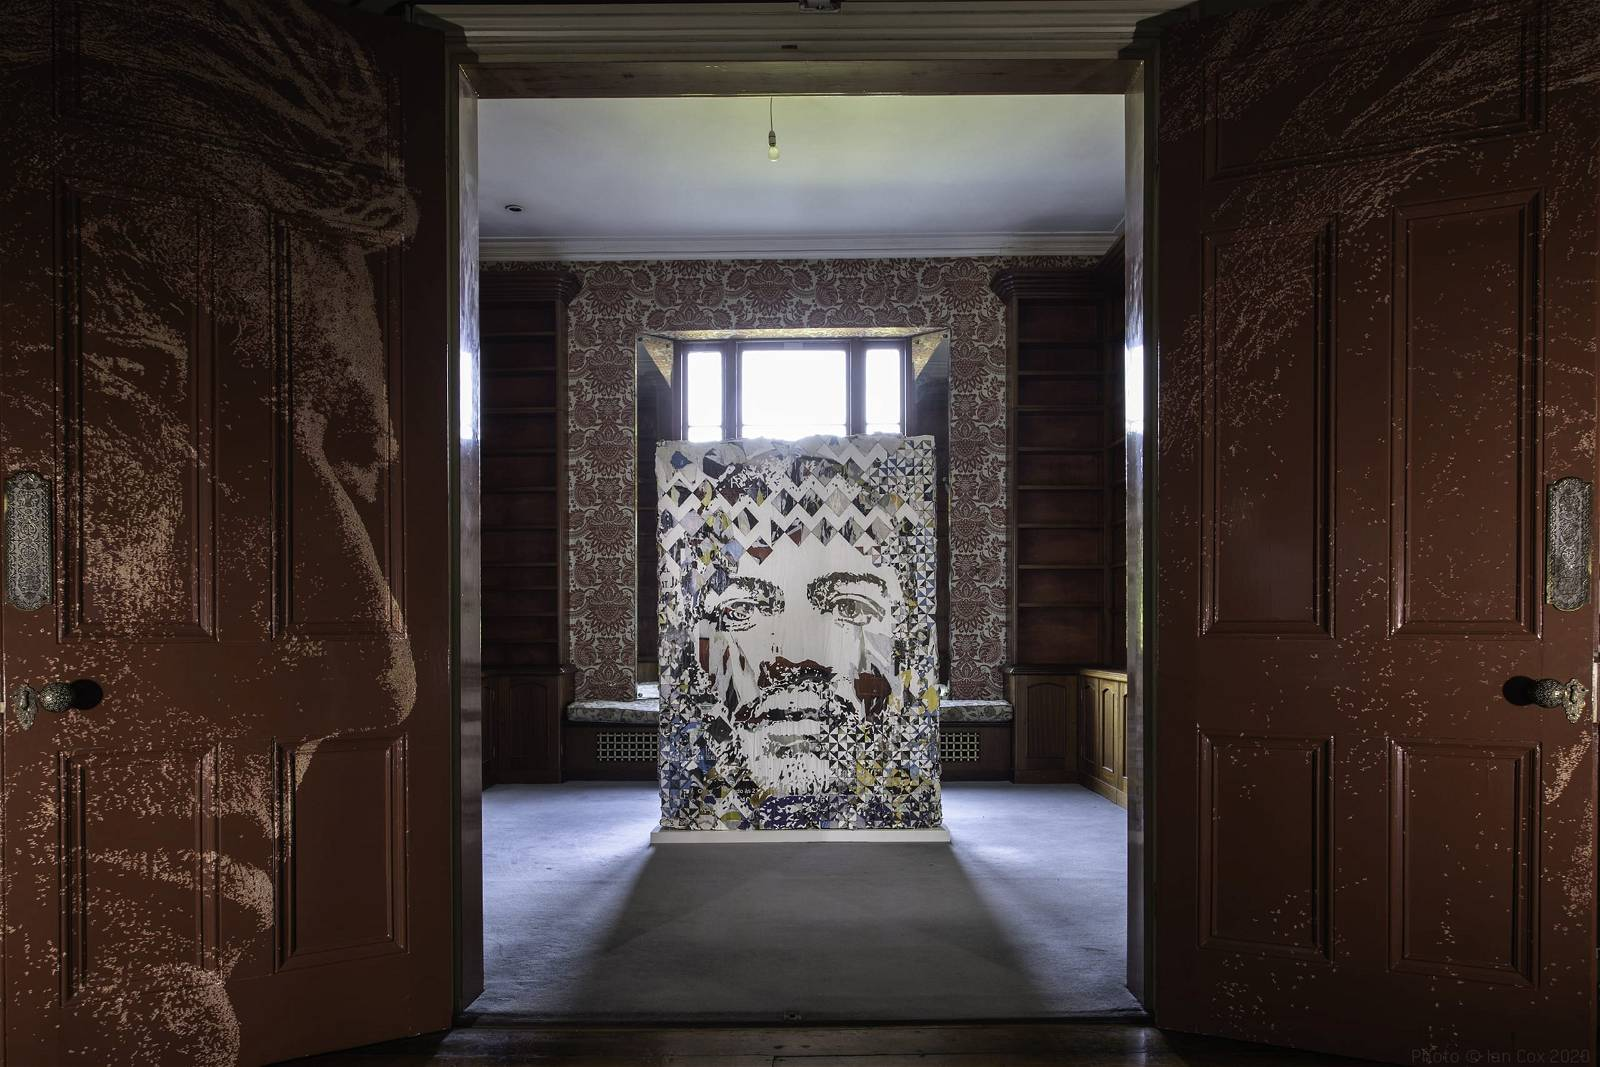 Vhils, installation view of disCONNECT, Schoeni Projects London (2020), Nick Smith Photos